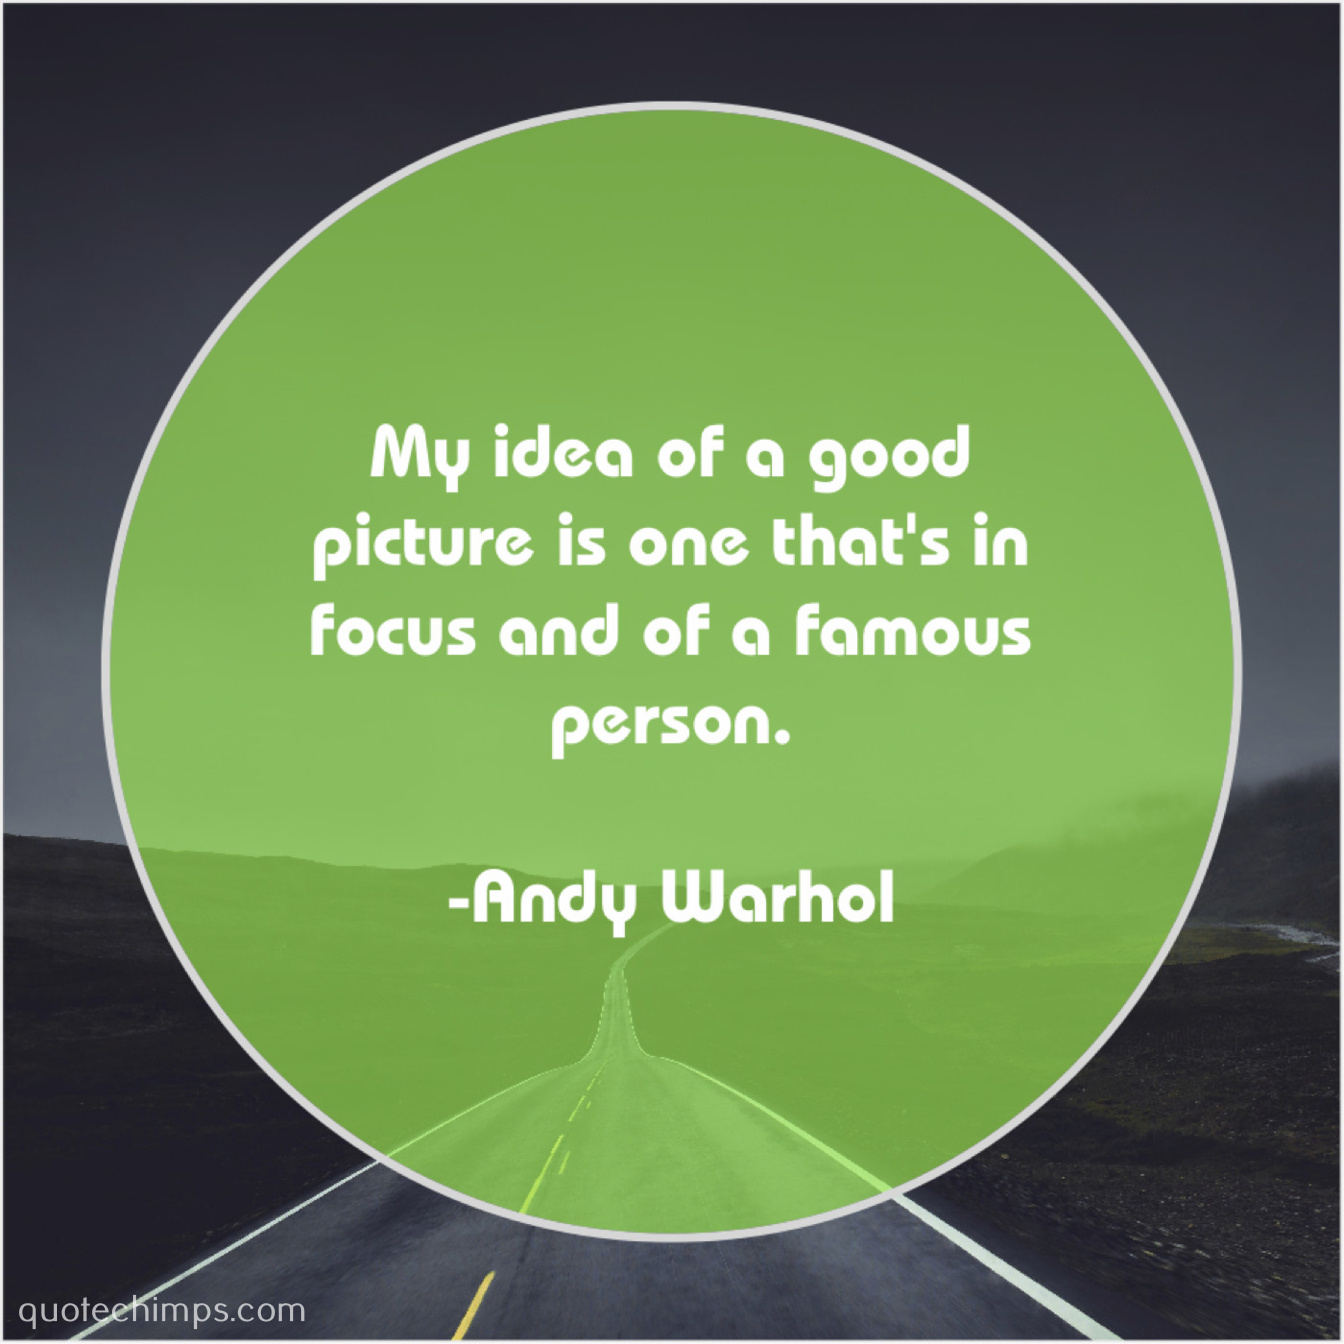 andy warhol my idea of a good quote chimps